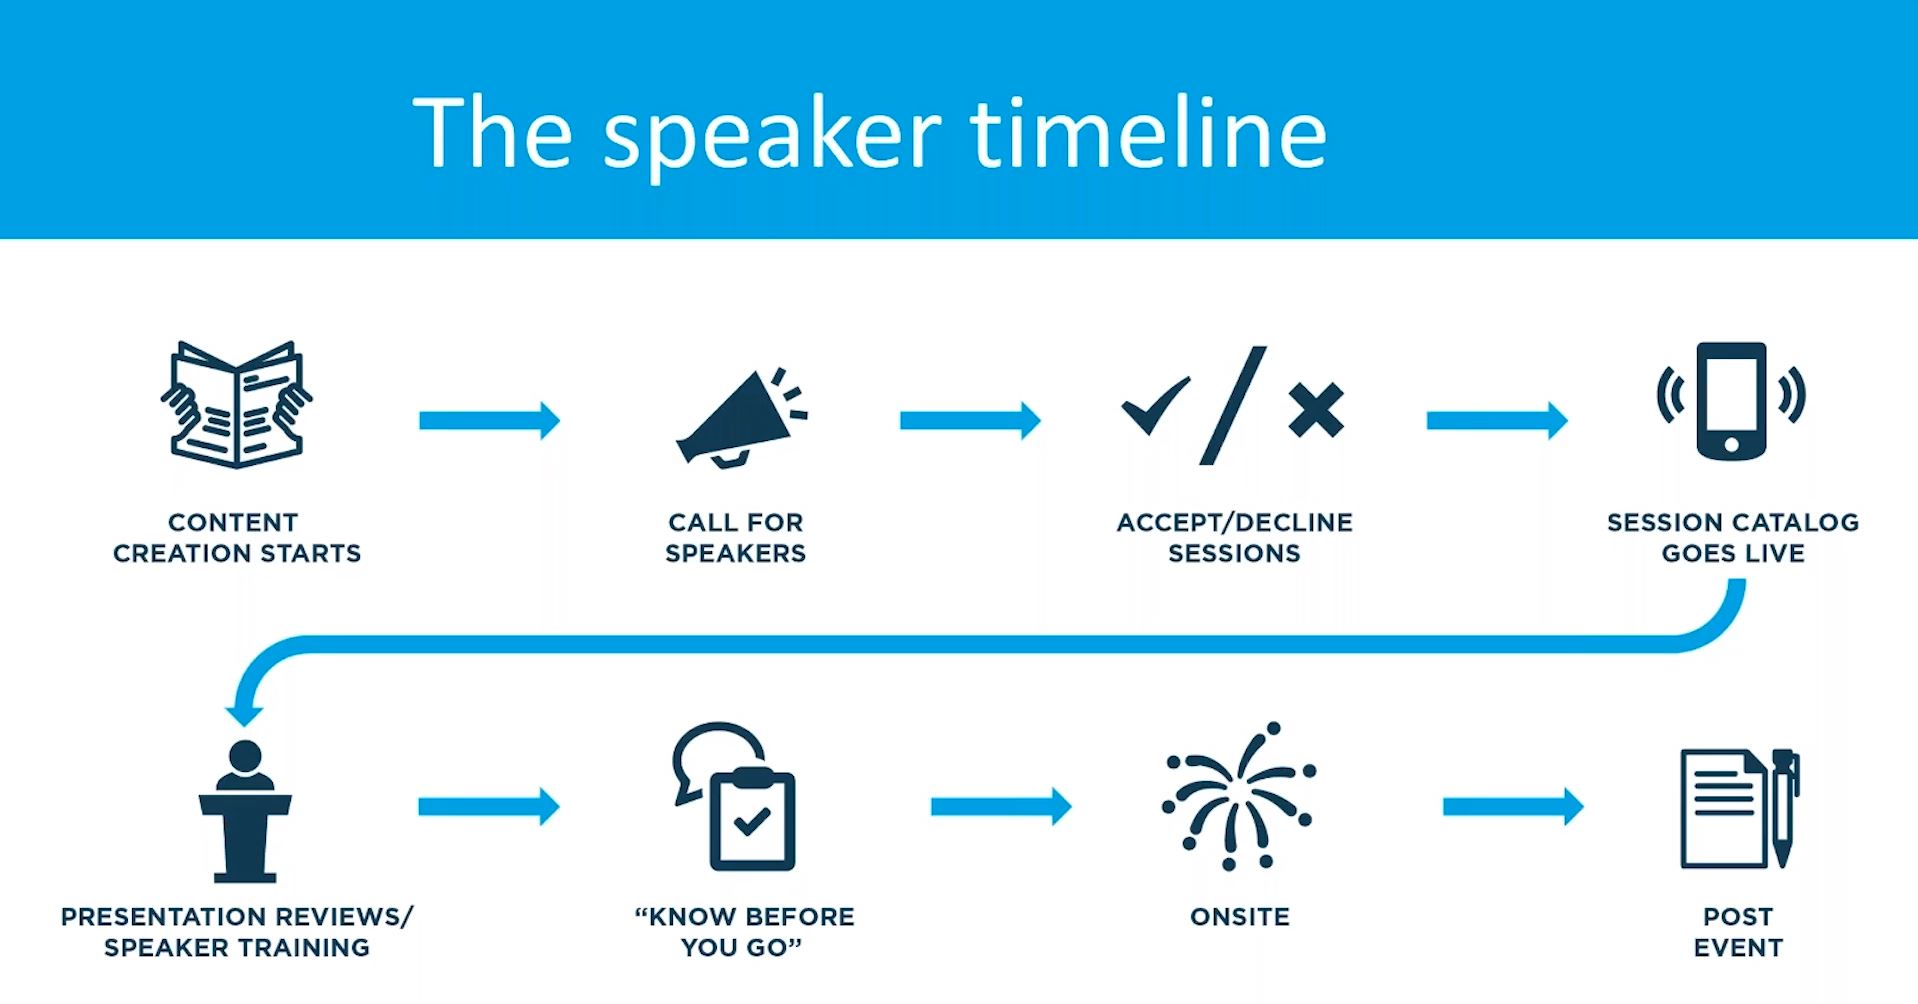 The speaker timeline